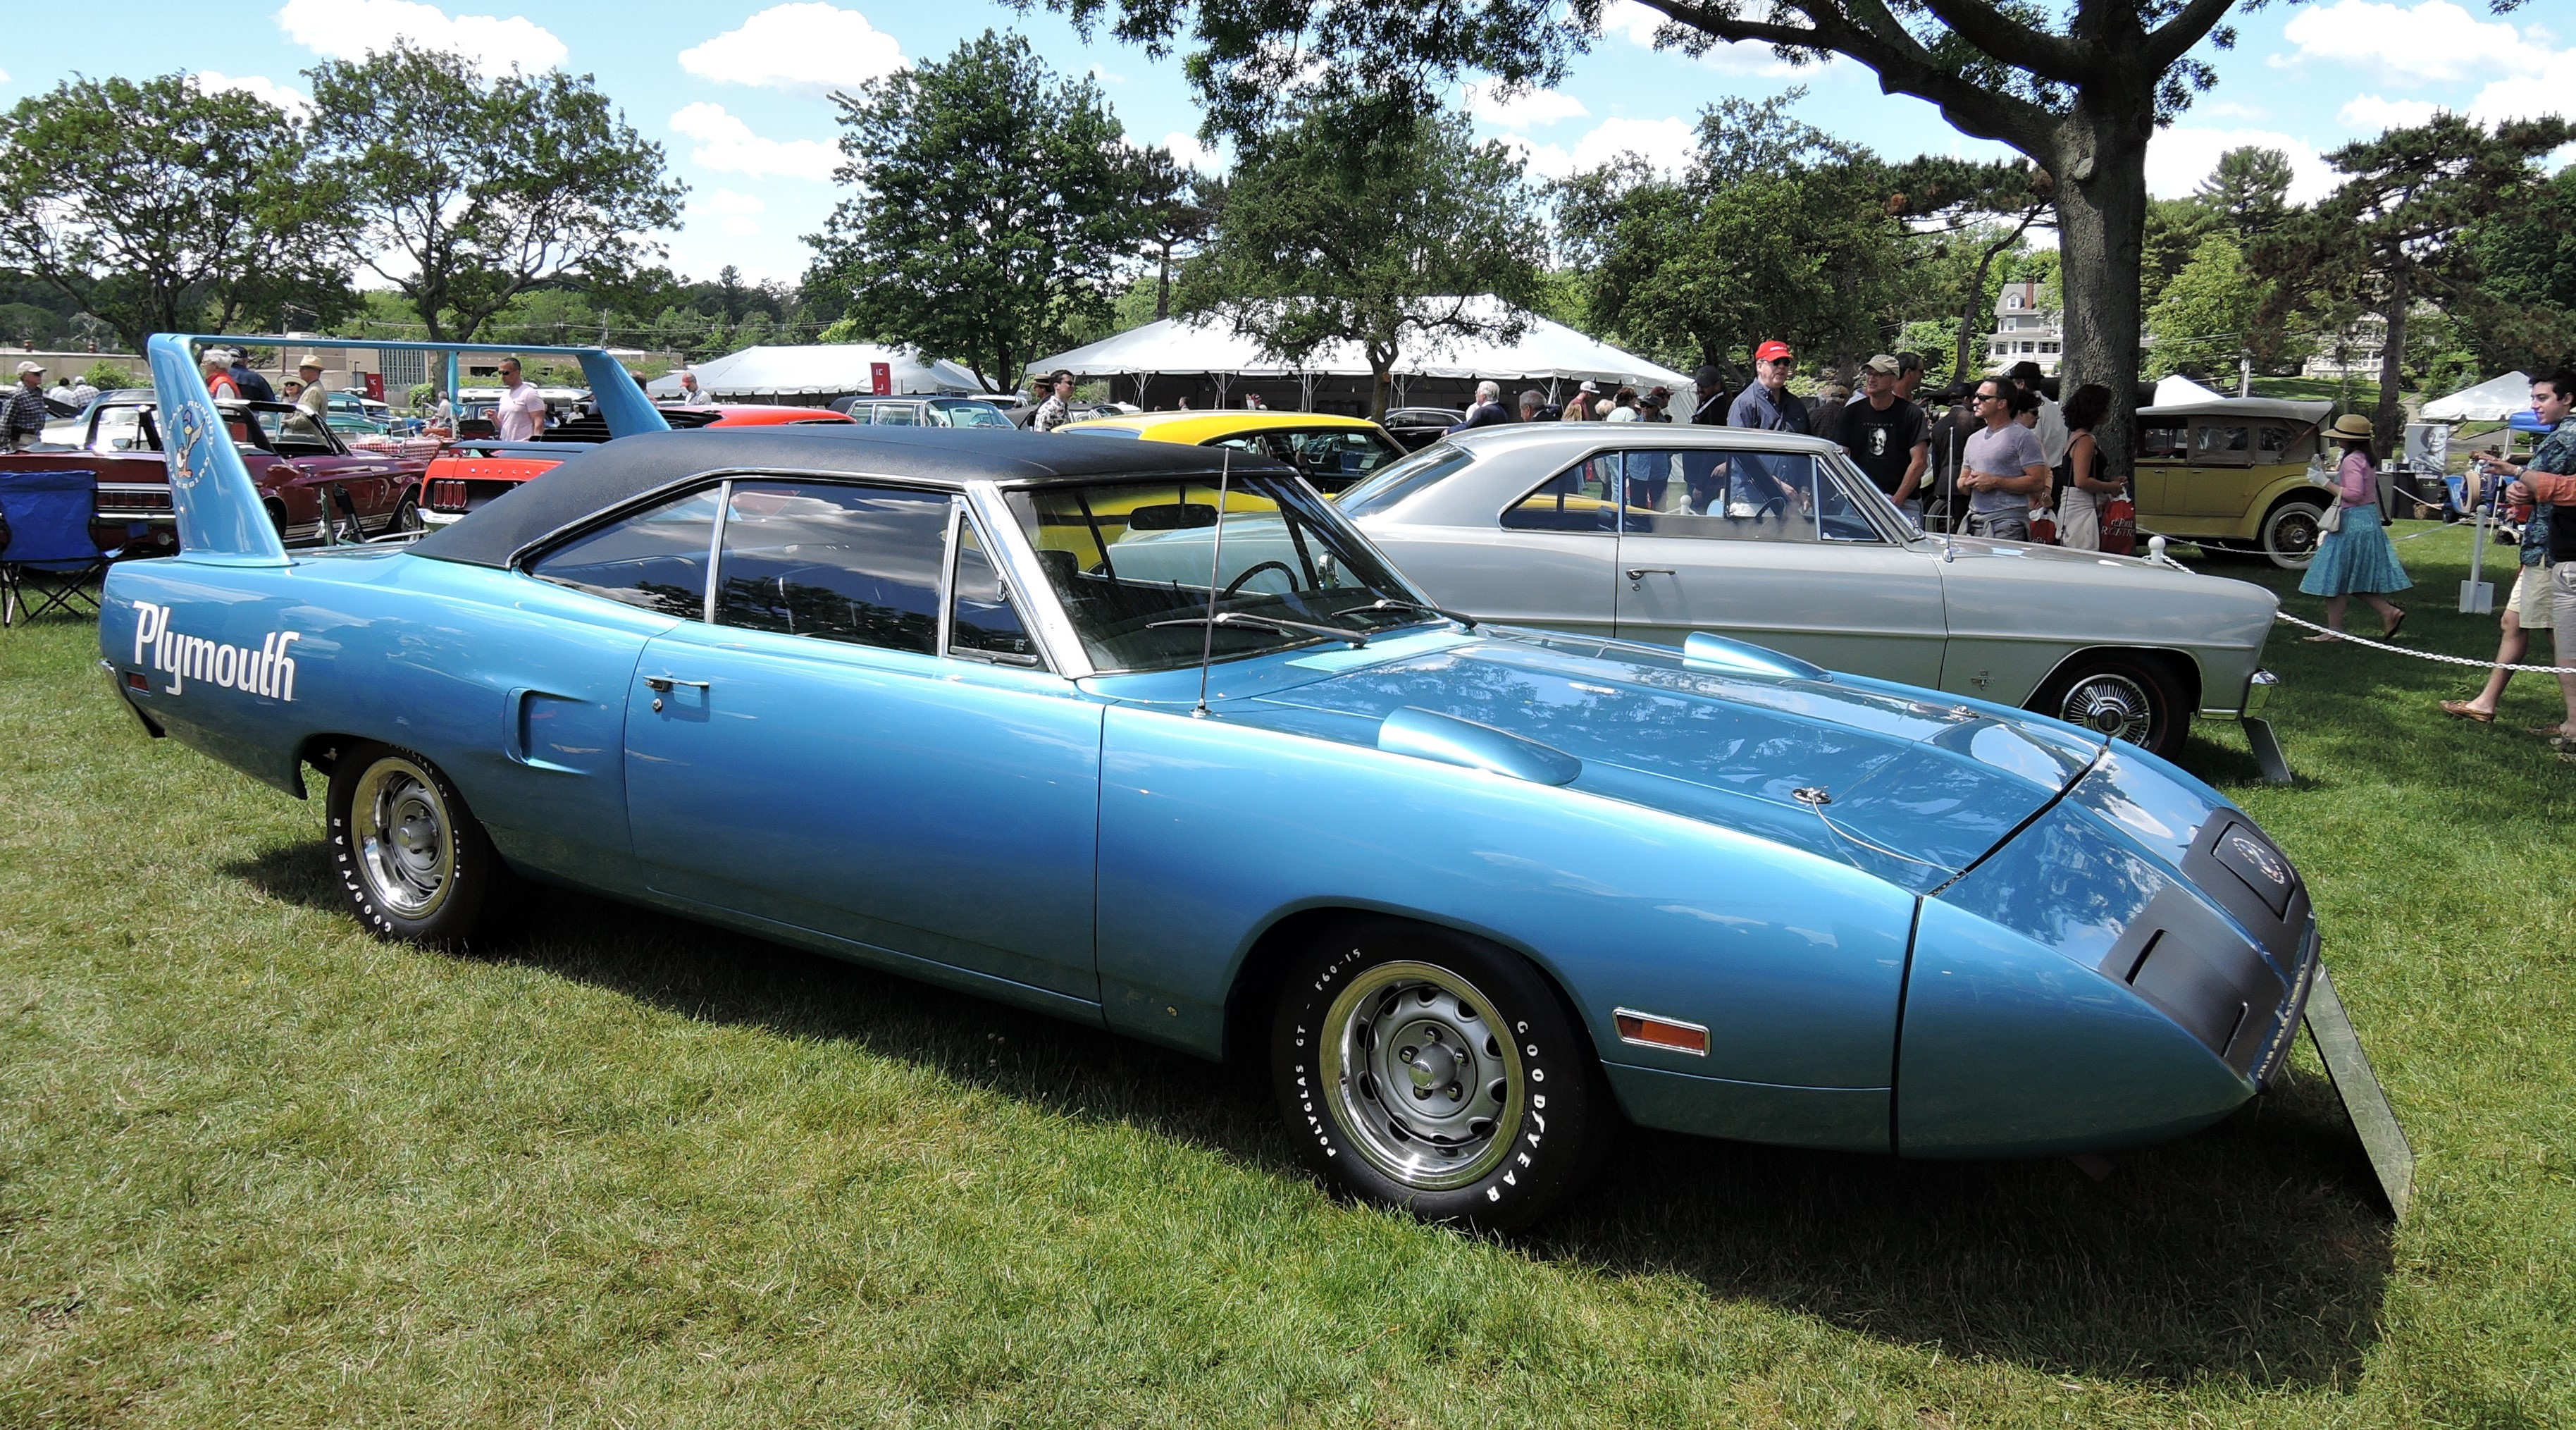 blue 1970 Plymouth Superbird - Greenwich Concours d'Elegance 2017